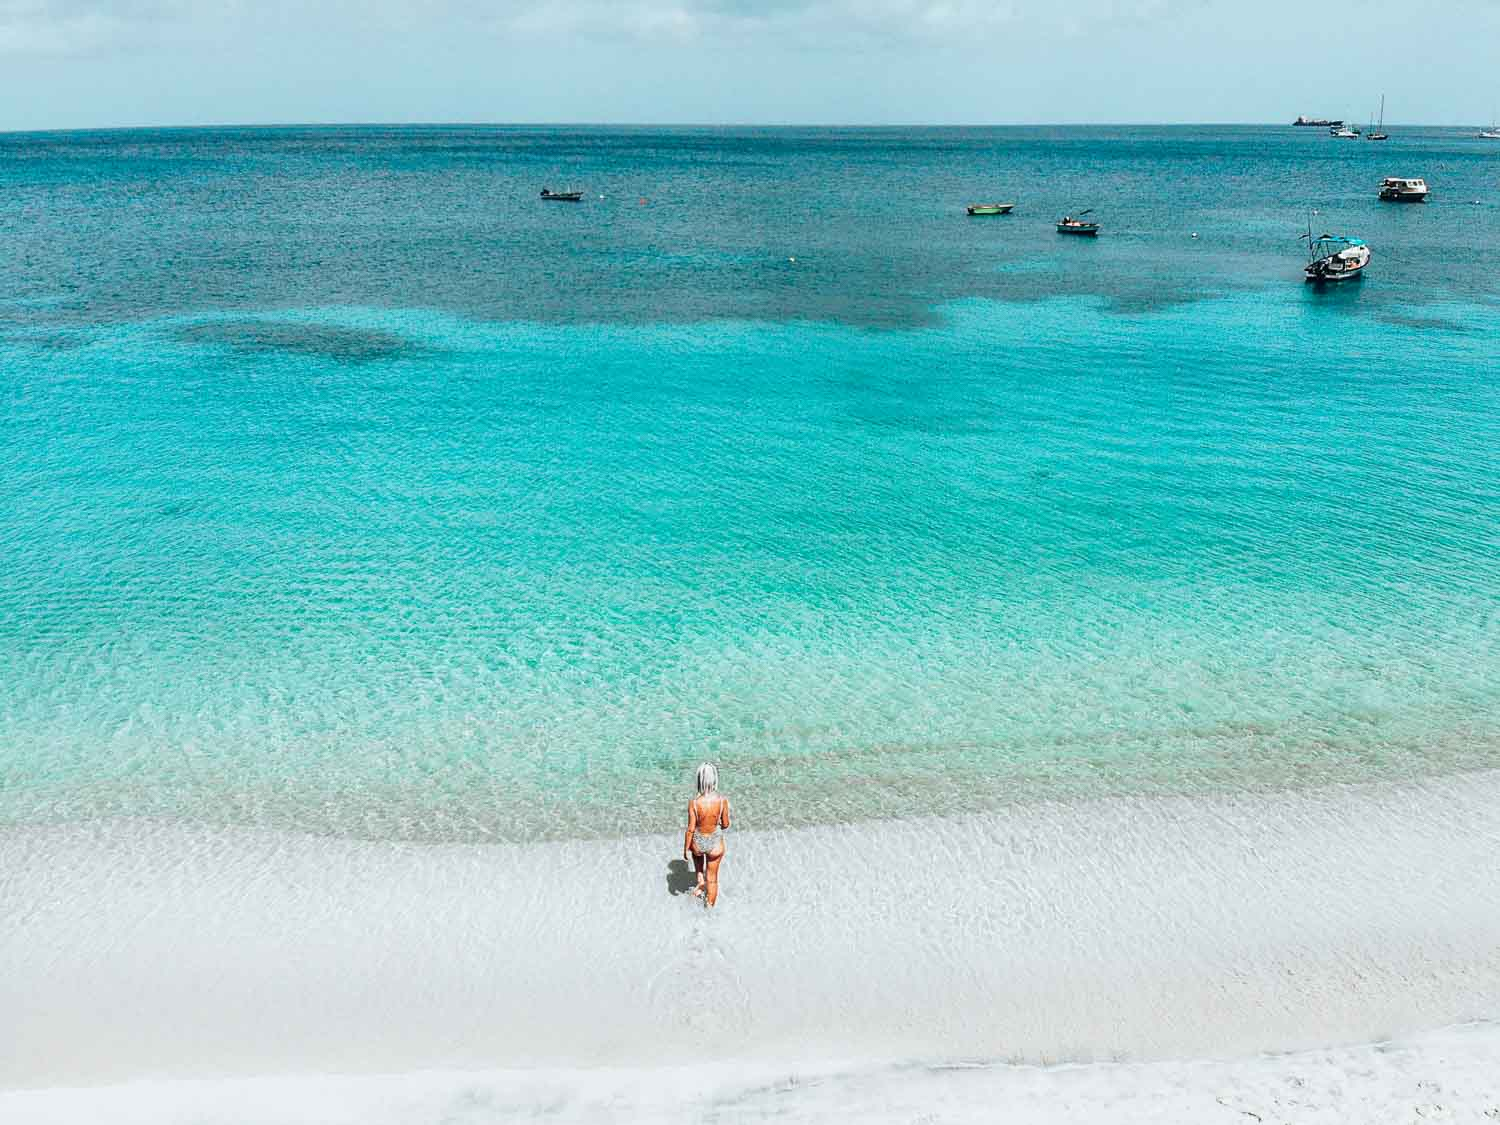 Best Caribbean Beaches: 50 Best Caribbean Beaches As Chosen By Travel Bloggers